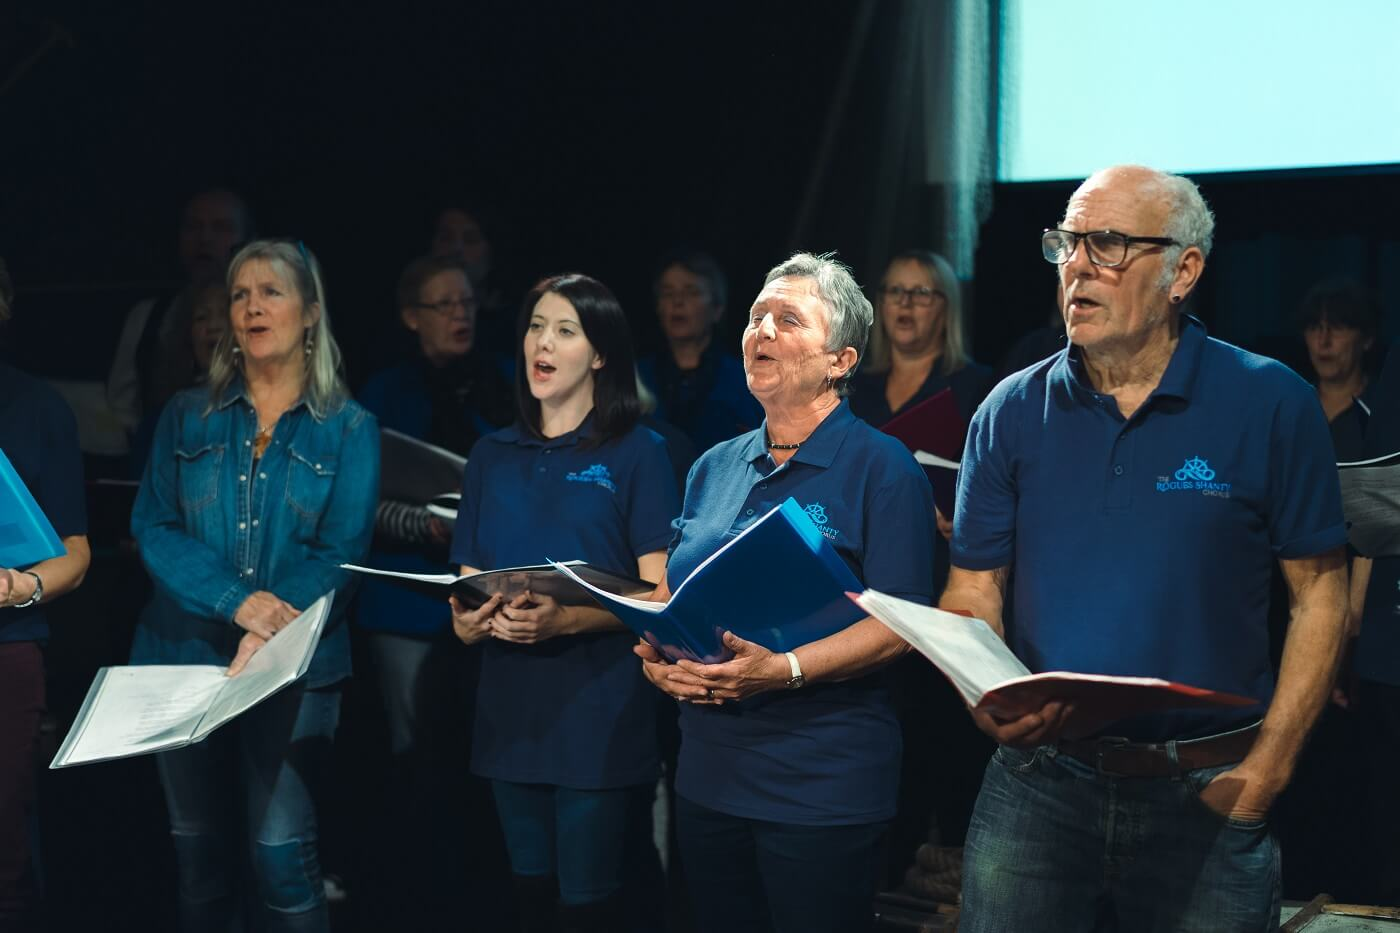 A large group of people in matching dark blue polos stand and sing while holding music booklets.